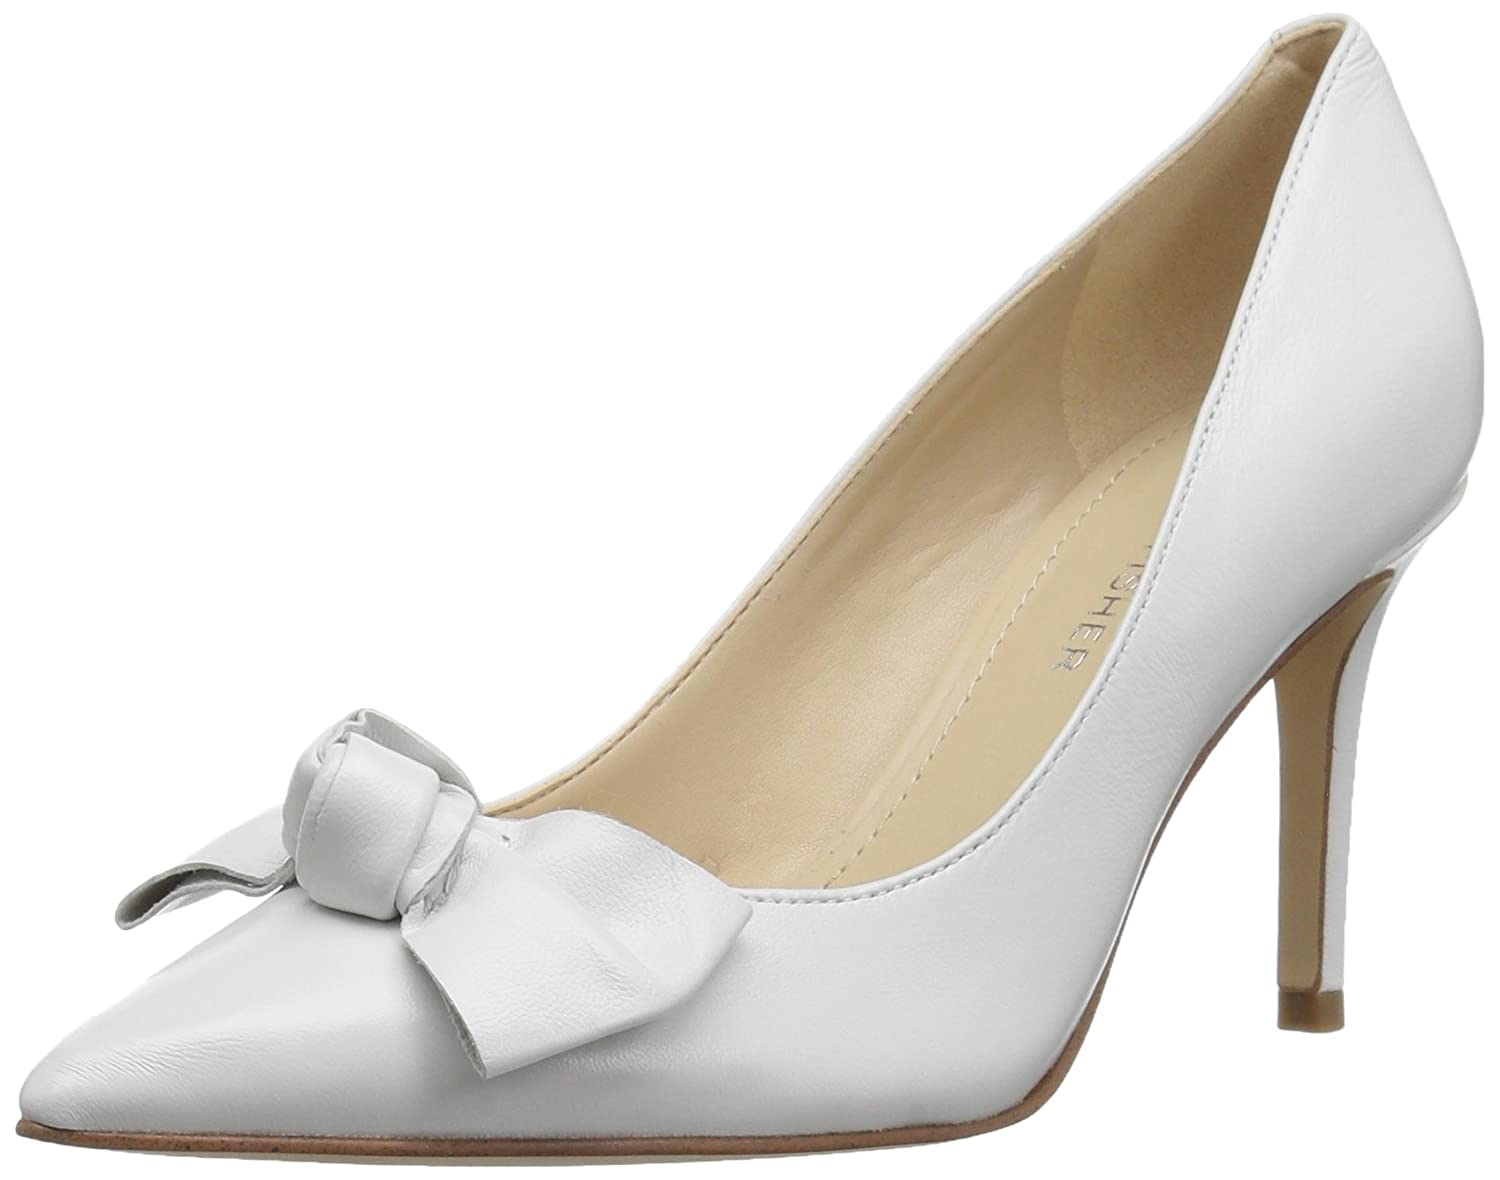 Marc Fisher Women's Doreny Pump B07BLLDJS1 6 B(M) US|White/Black